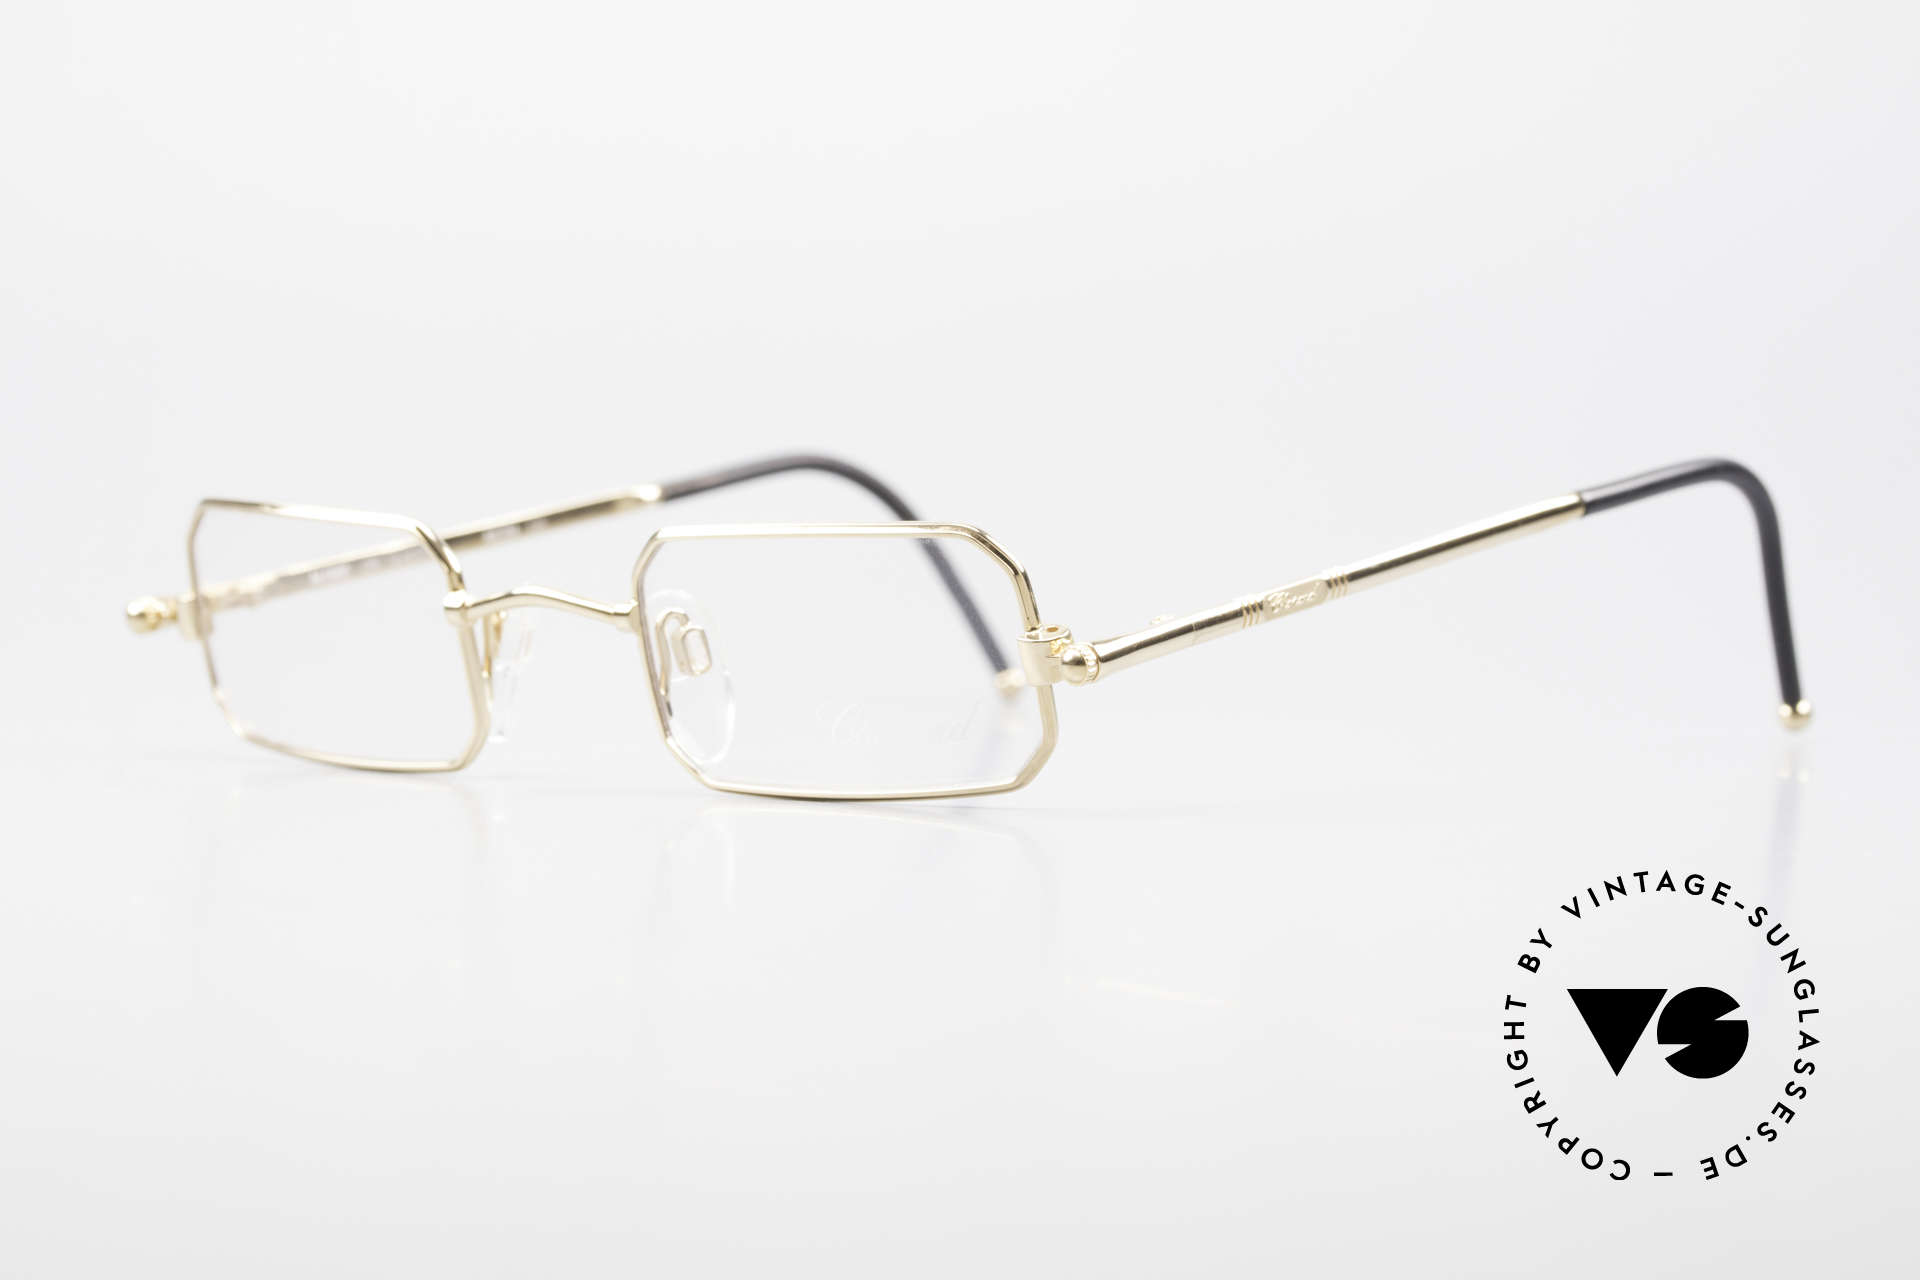 Chopard C002 Octagonal Luxury Eyeglasses, fantastic combination of elegance, style & quality, Made for Men and Women